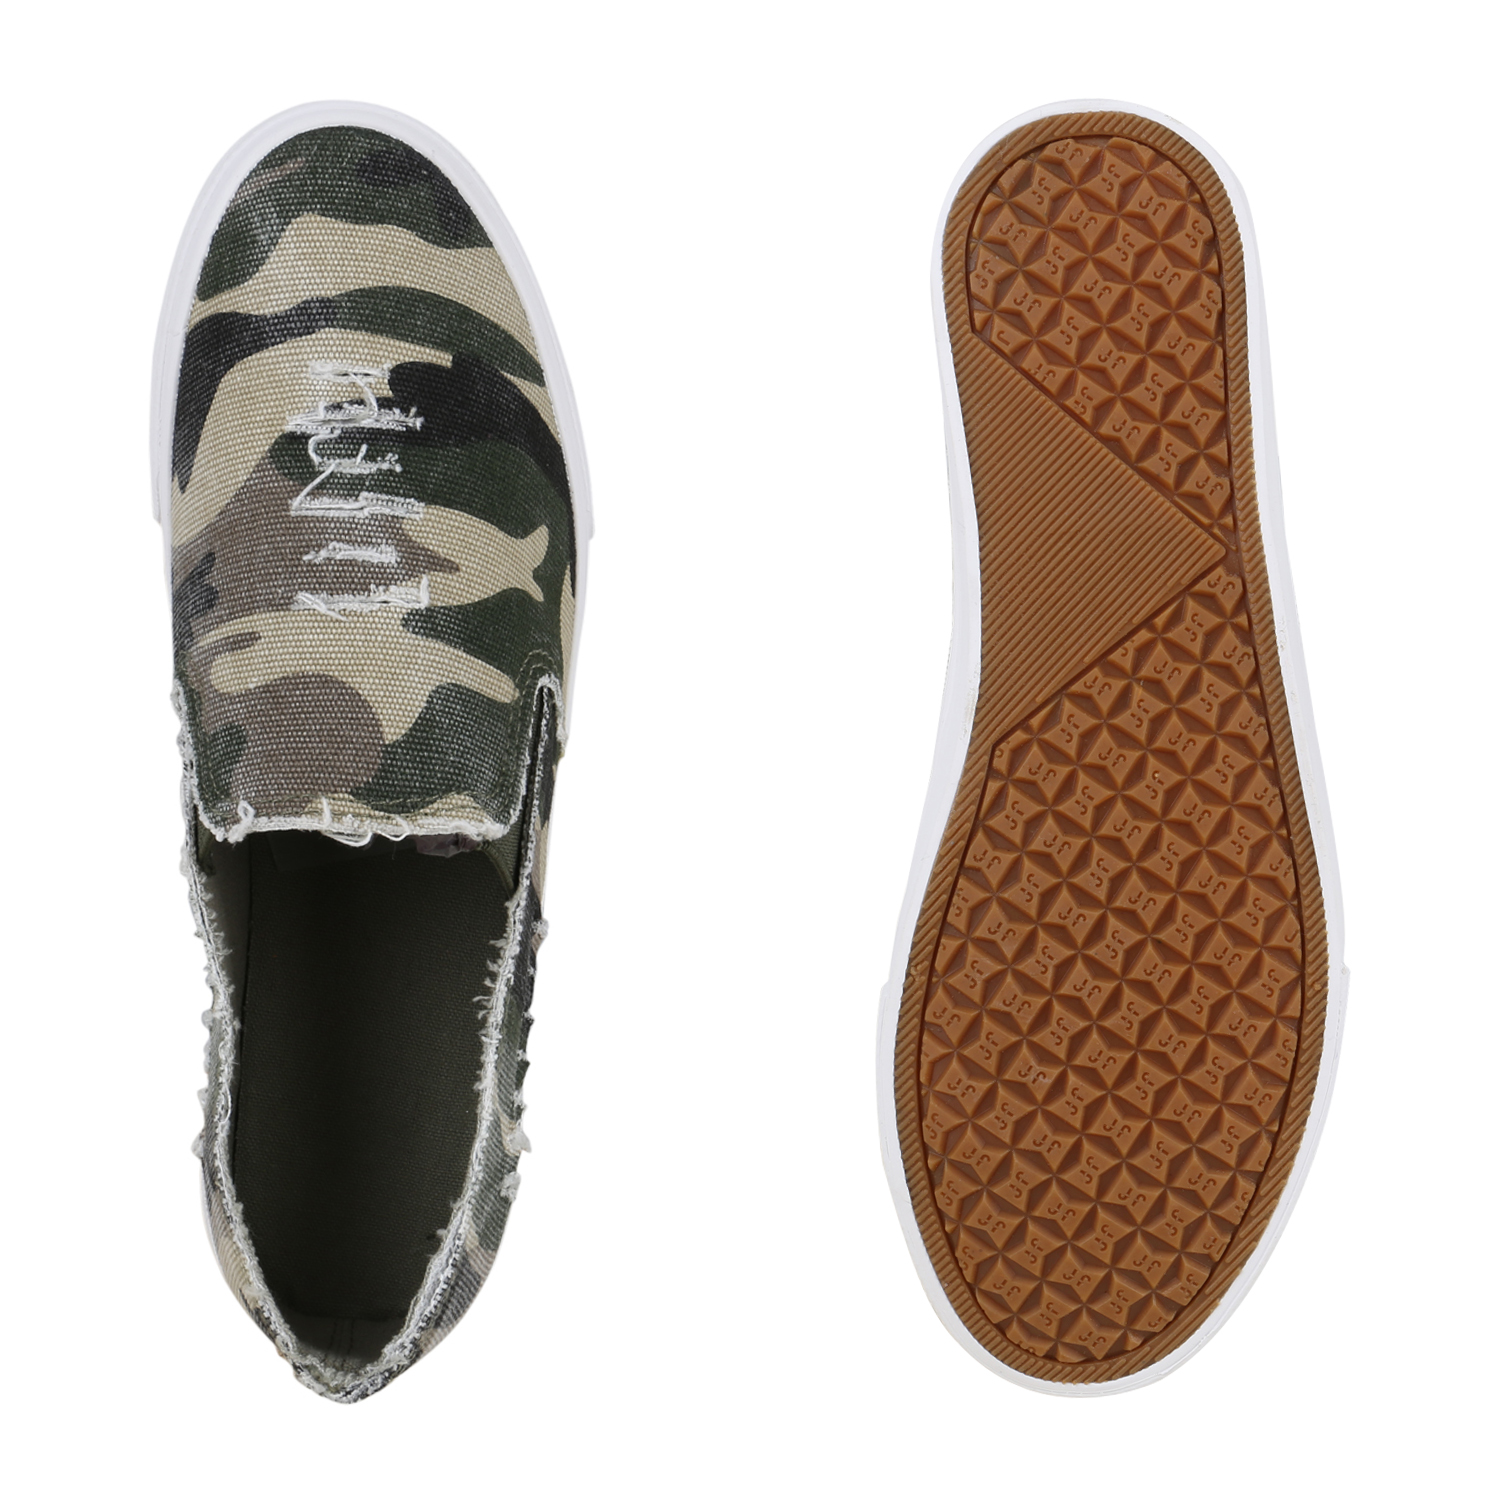 top damen schuhe 130489 sneakers camouflage creme 39 neues modell ebay. Black Bedroom Furniture Sets. Home Design Ideas